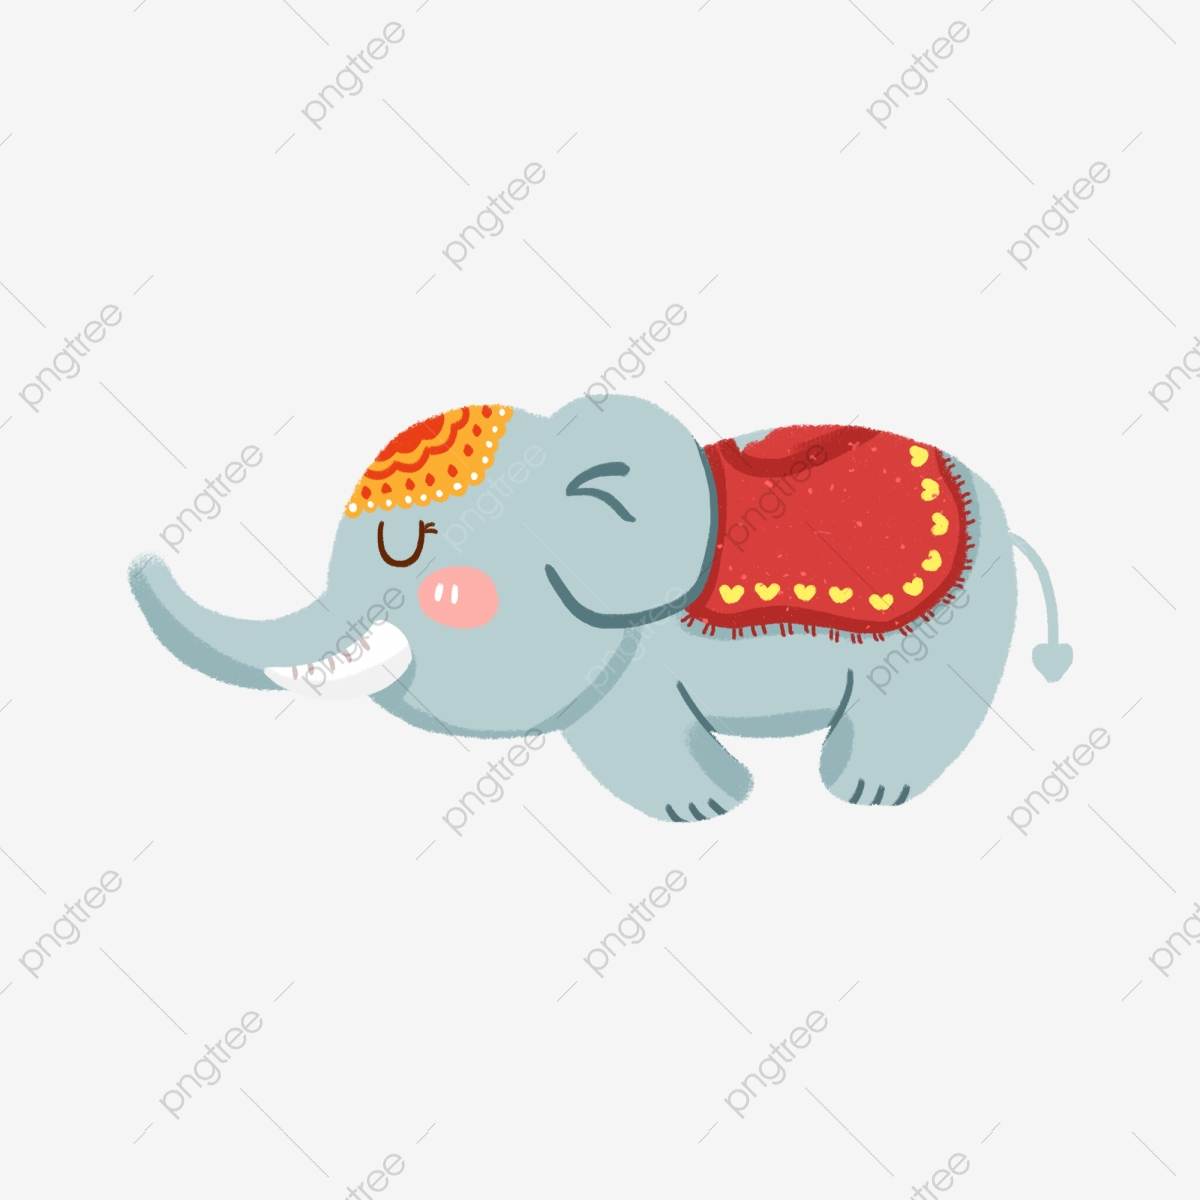 Cartoon Animal Elephant Png Circus Clipart Elephant Grey Png Transparent Clipart Image And Psd File For Free Download Drawing, cartoon elephant, comics, mammal, cat like mammal png. pngtree